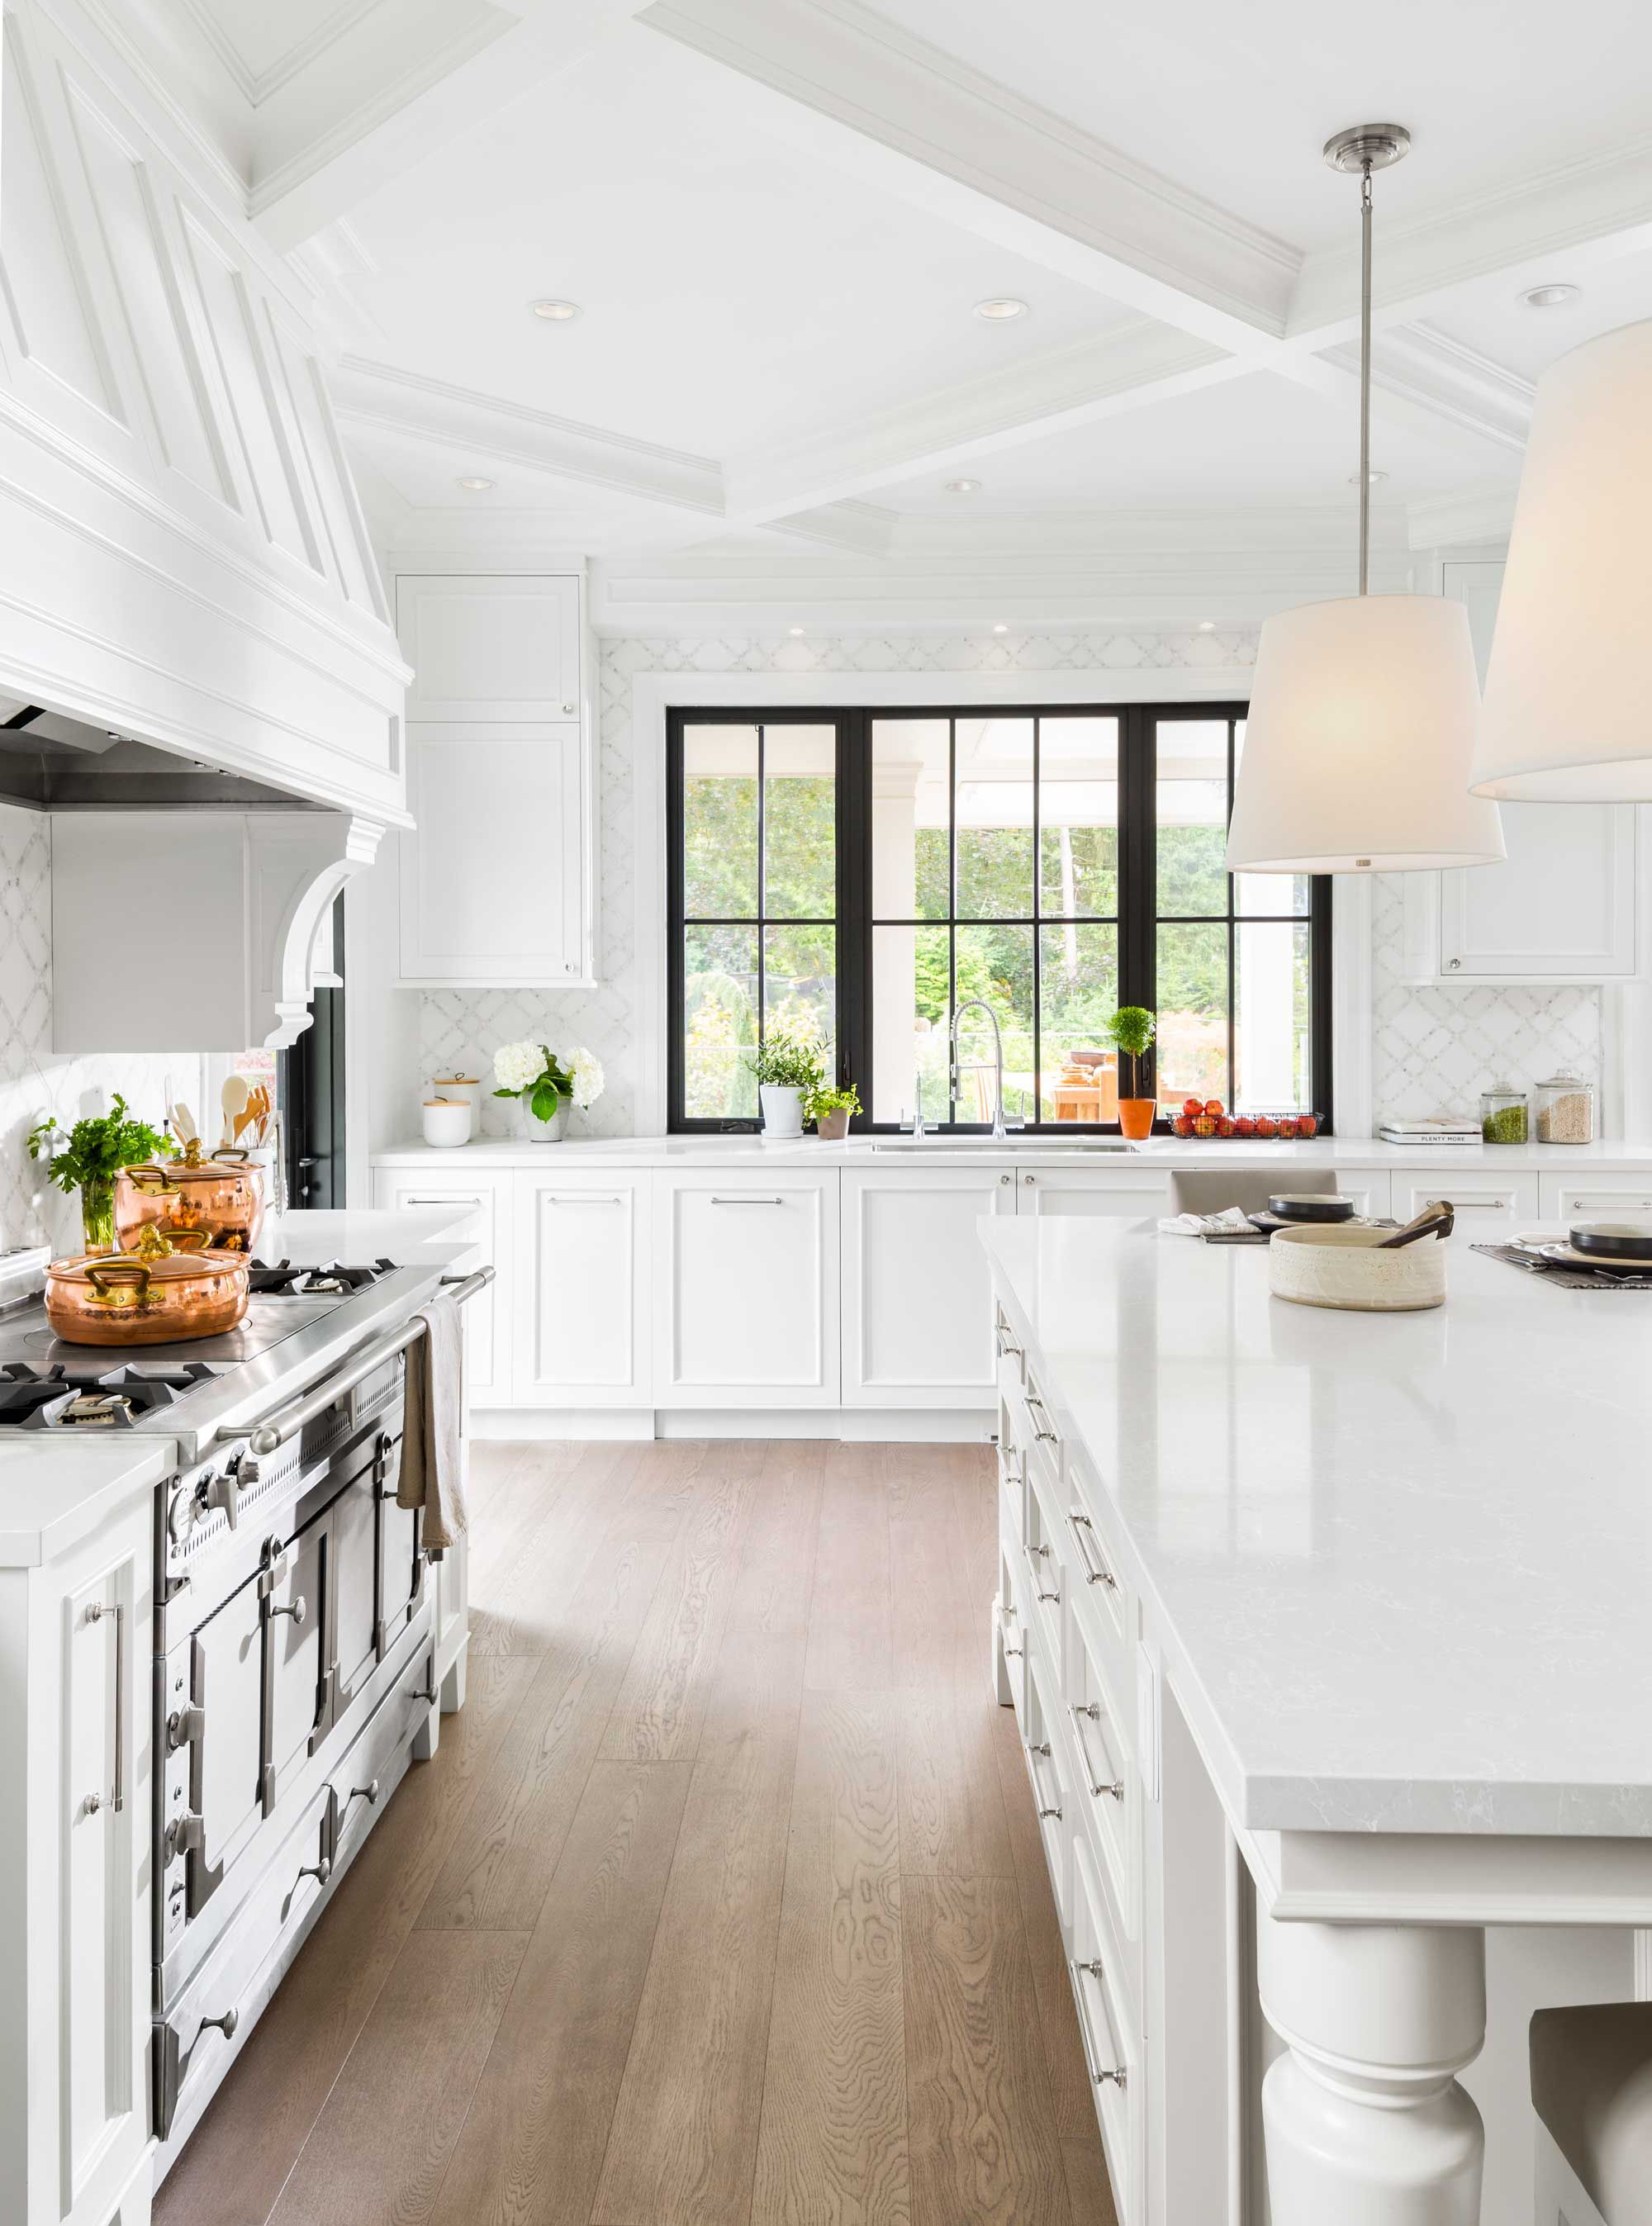 We Can't Get Enough of This NoHoldsBarred Kitchen